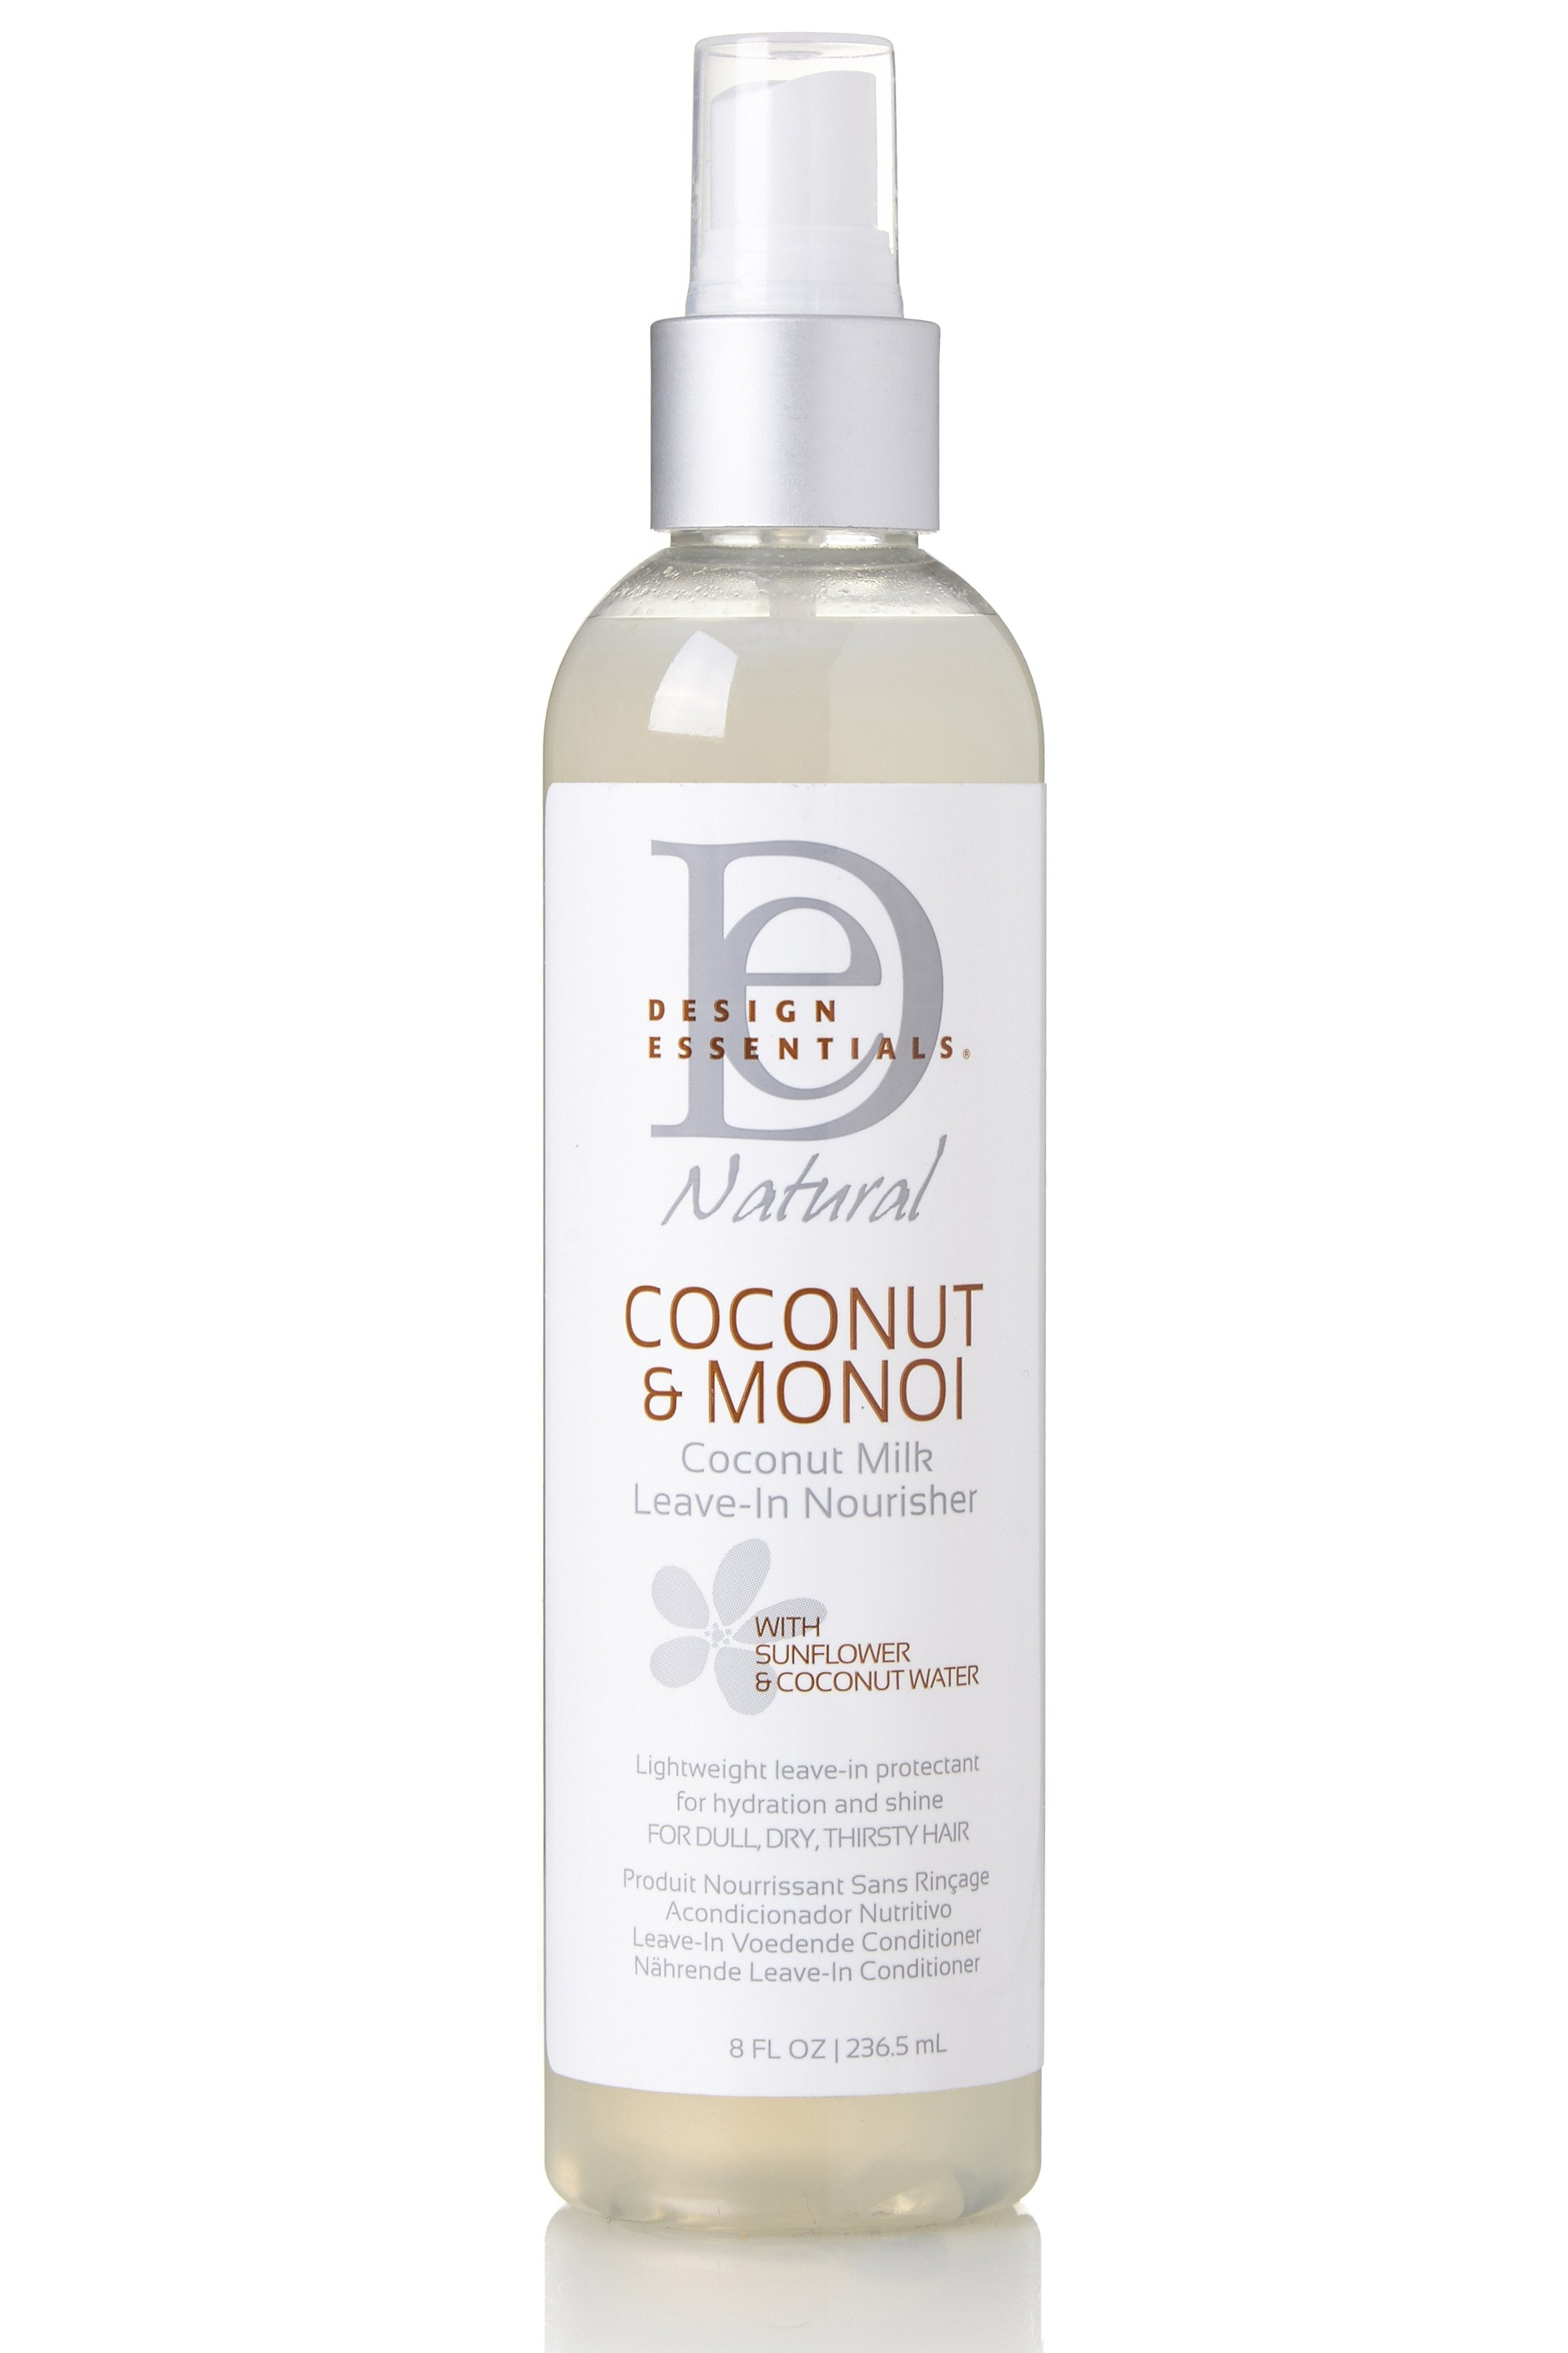 Design Essesntials Coconut Monoi Coconut Milk Leave In Nourisher